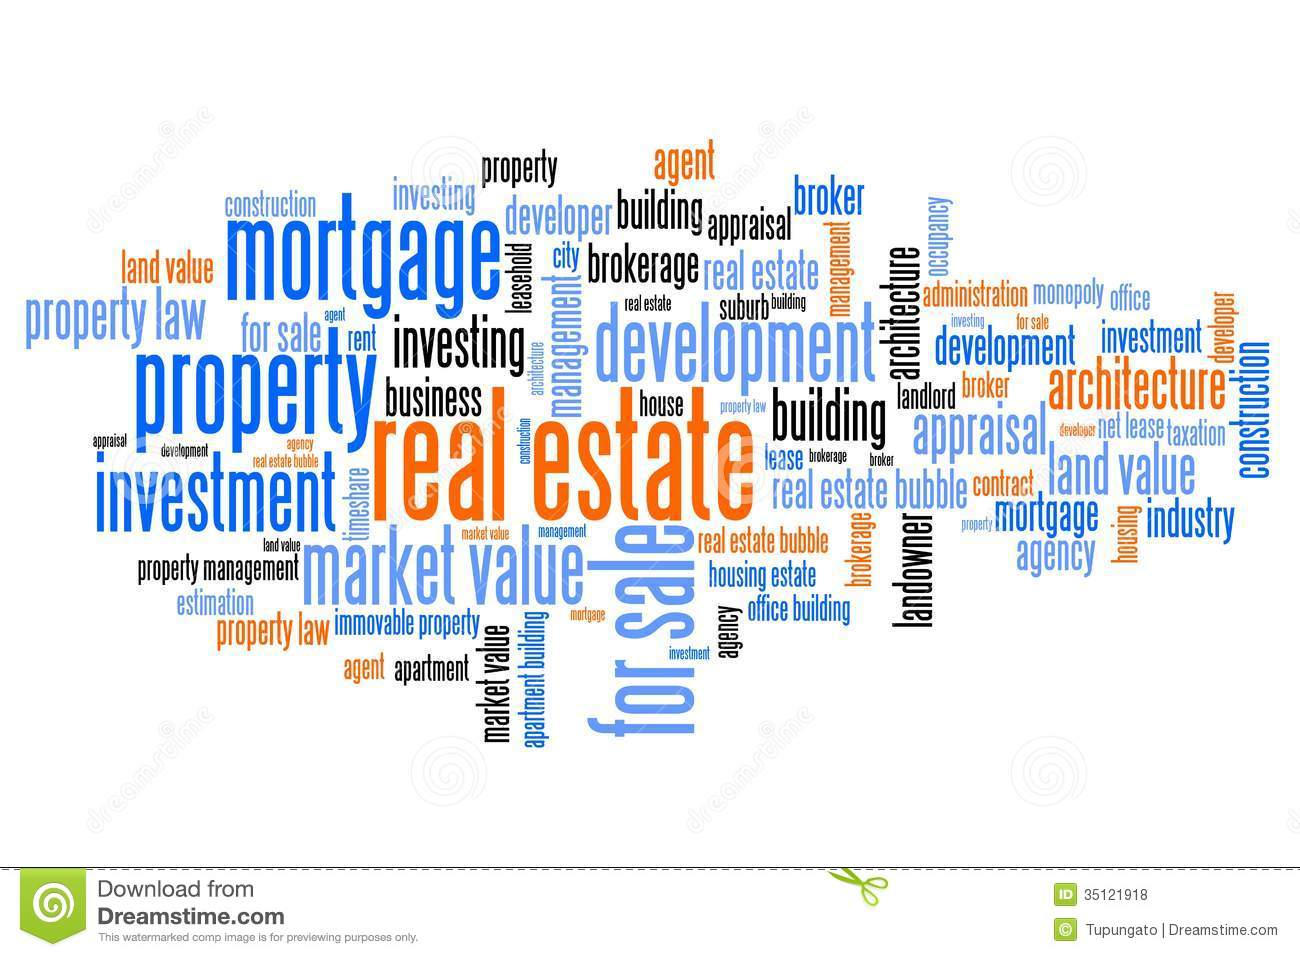 The Best Time to Invest in Real Estate in India